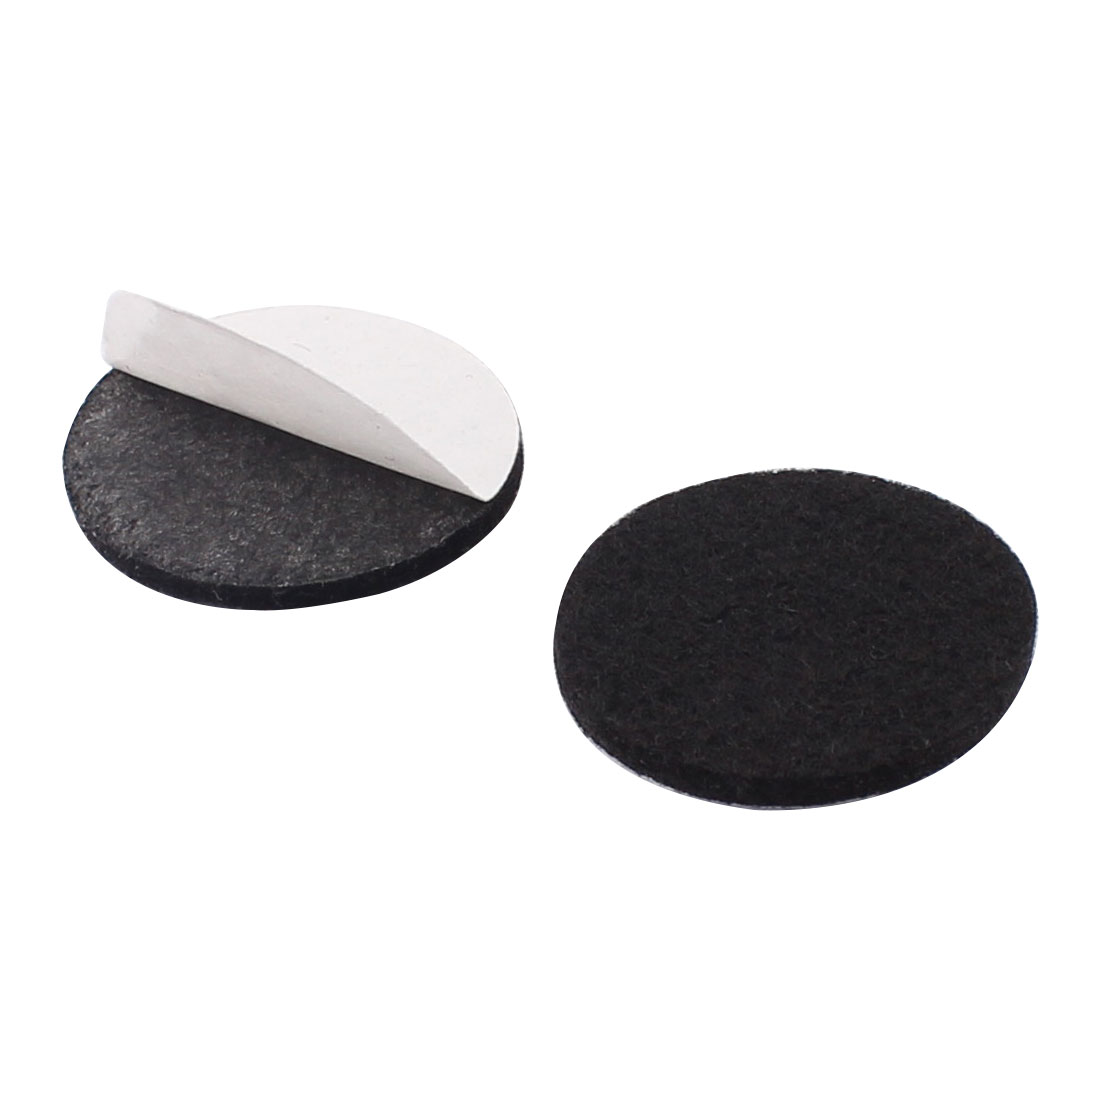 Household Self Adhesive Protect Furniture Felt Pads Mats Black 30mm 10pcs - image 1 of 2